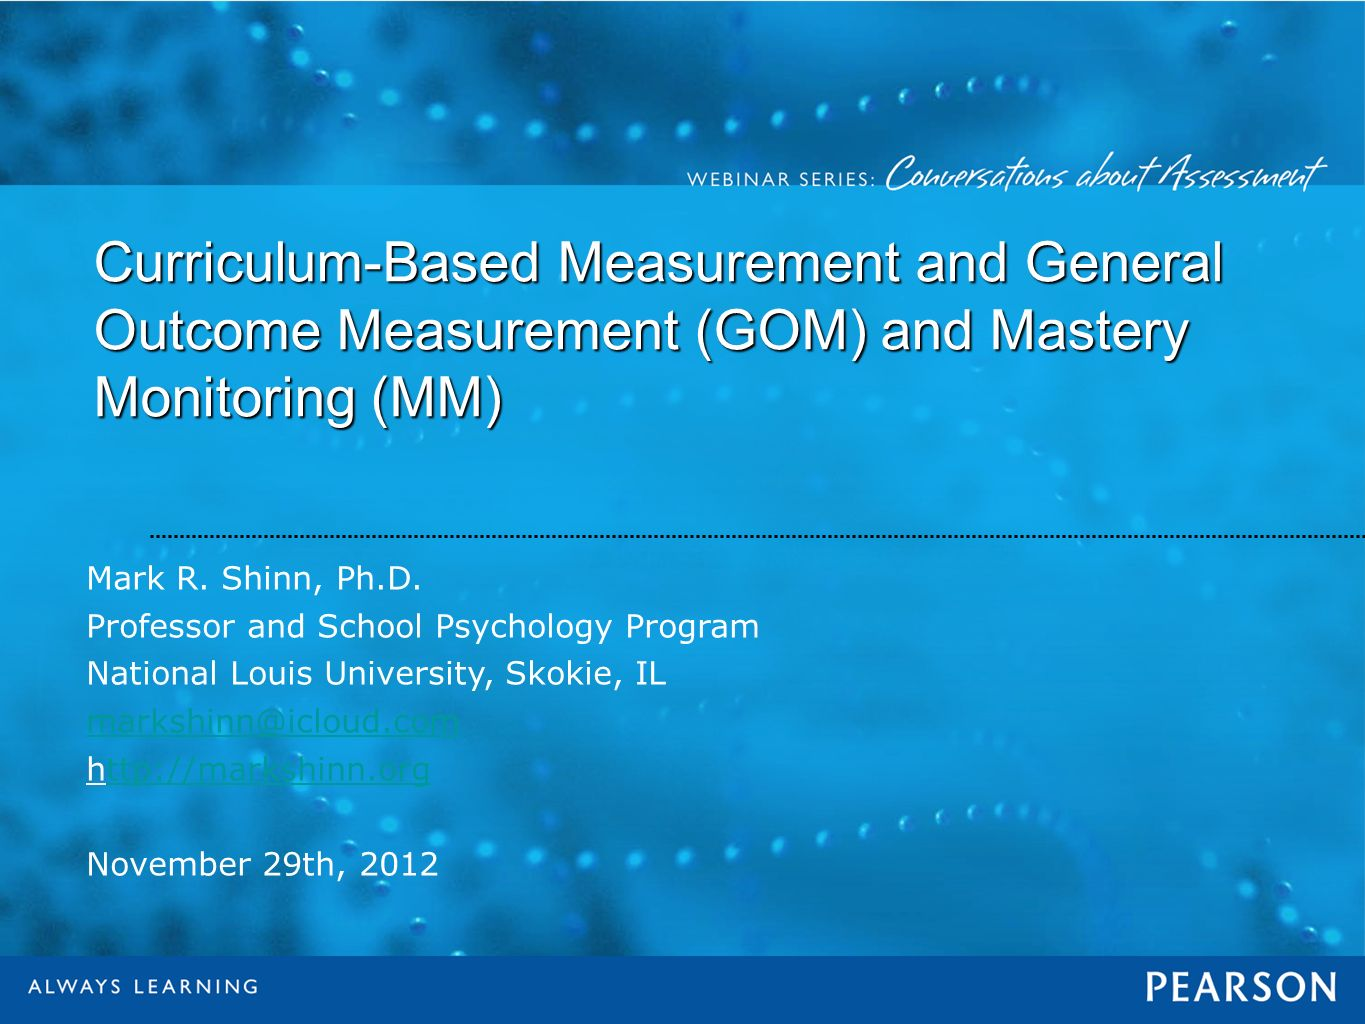 Curriculum-Based Measurement and General Outcome Measurement (GOM) and Mastery Monitoring (MM)